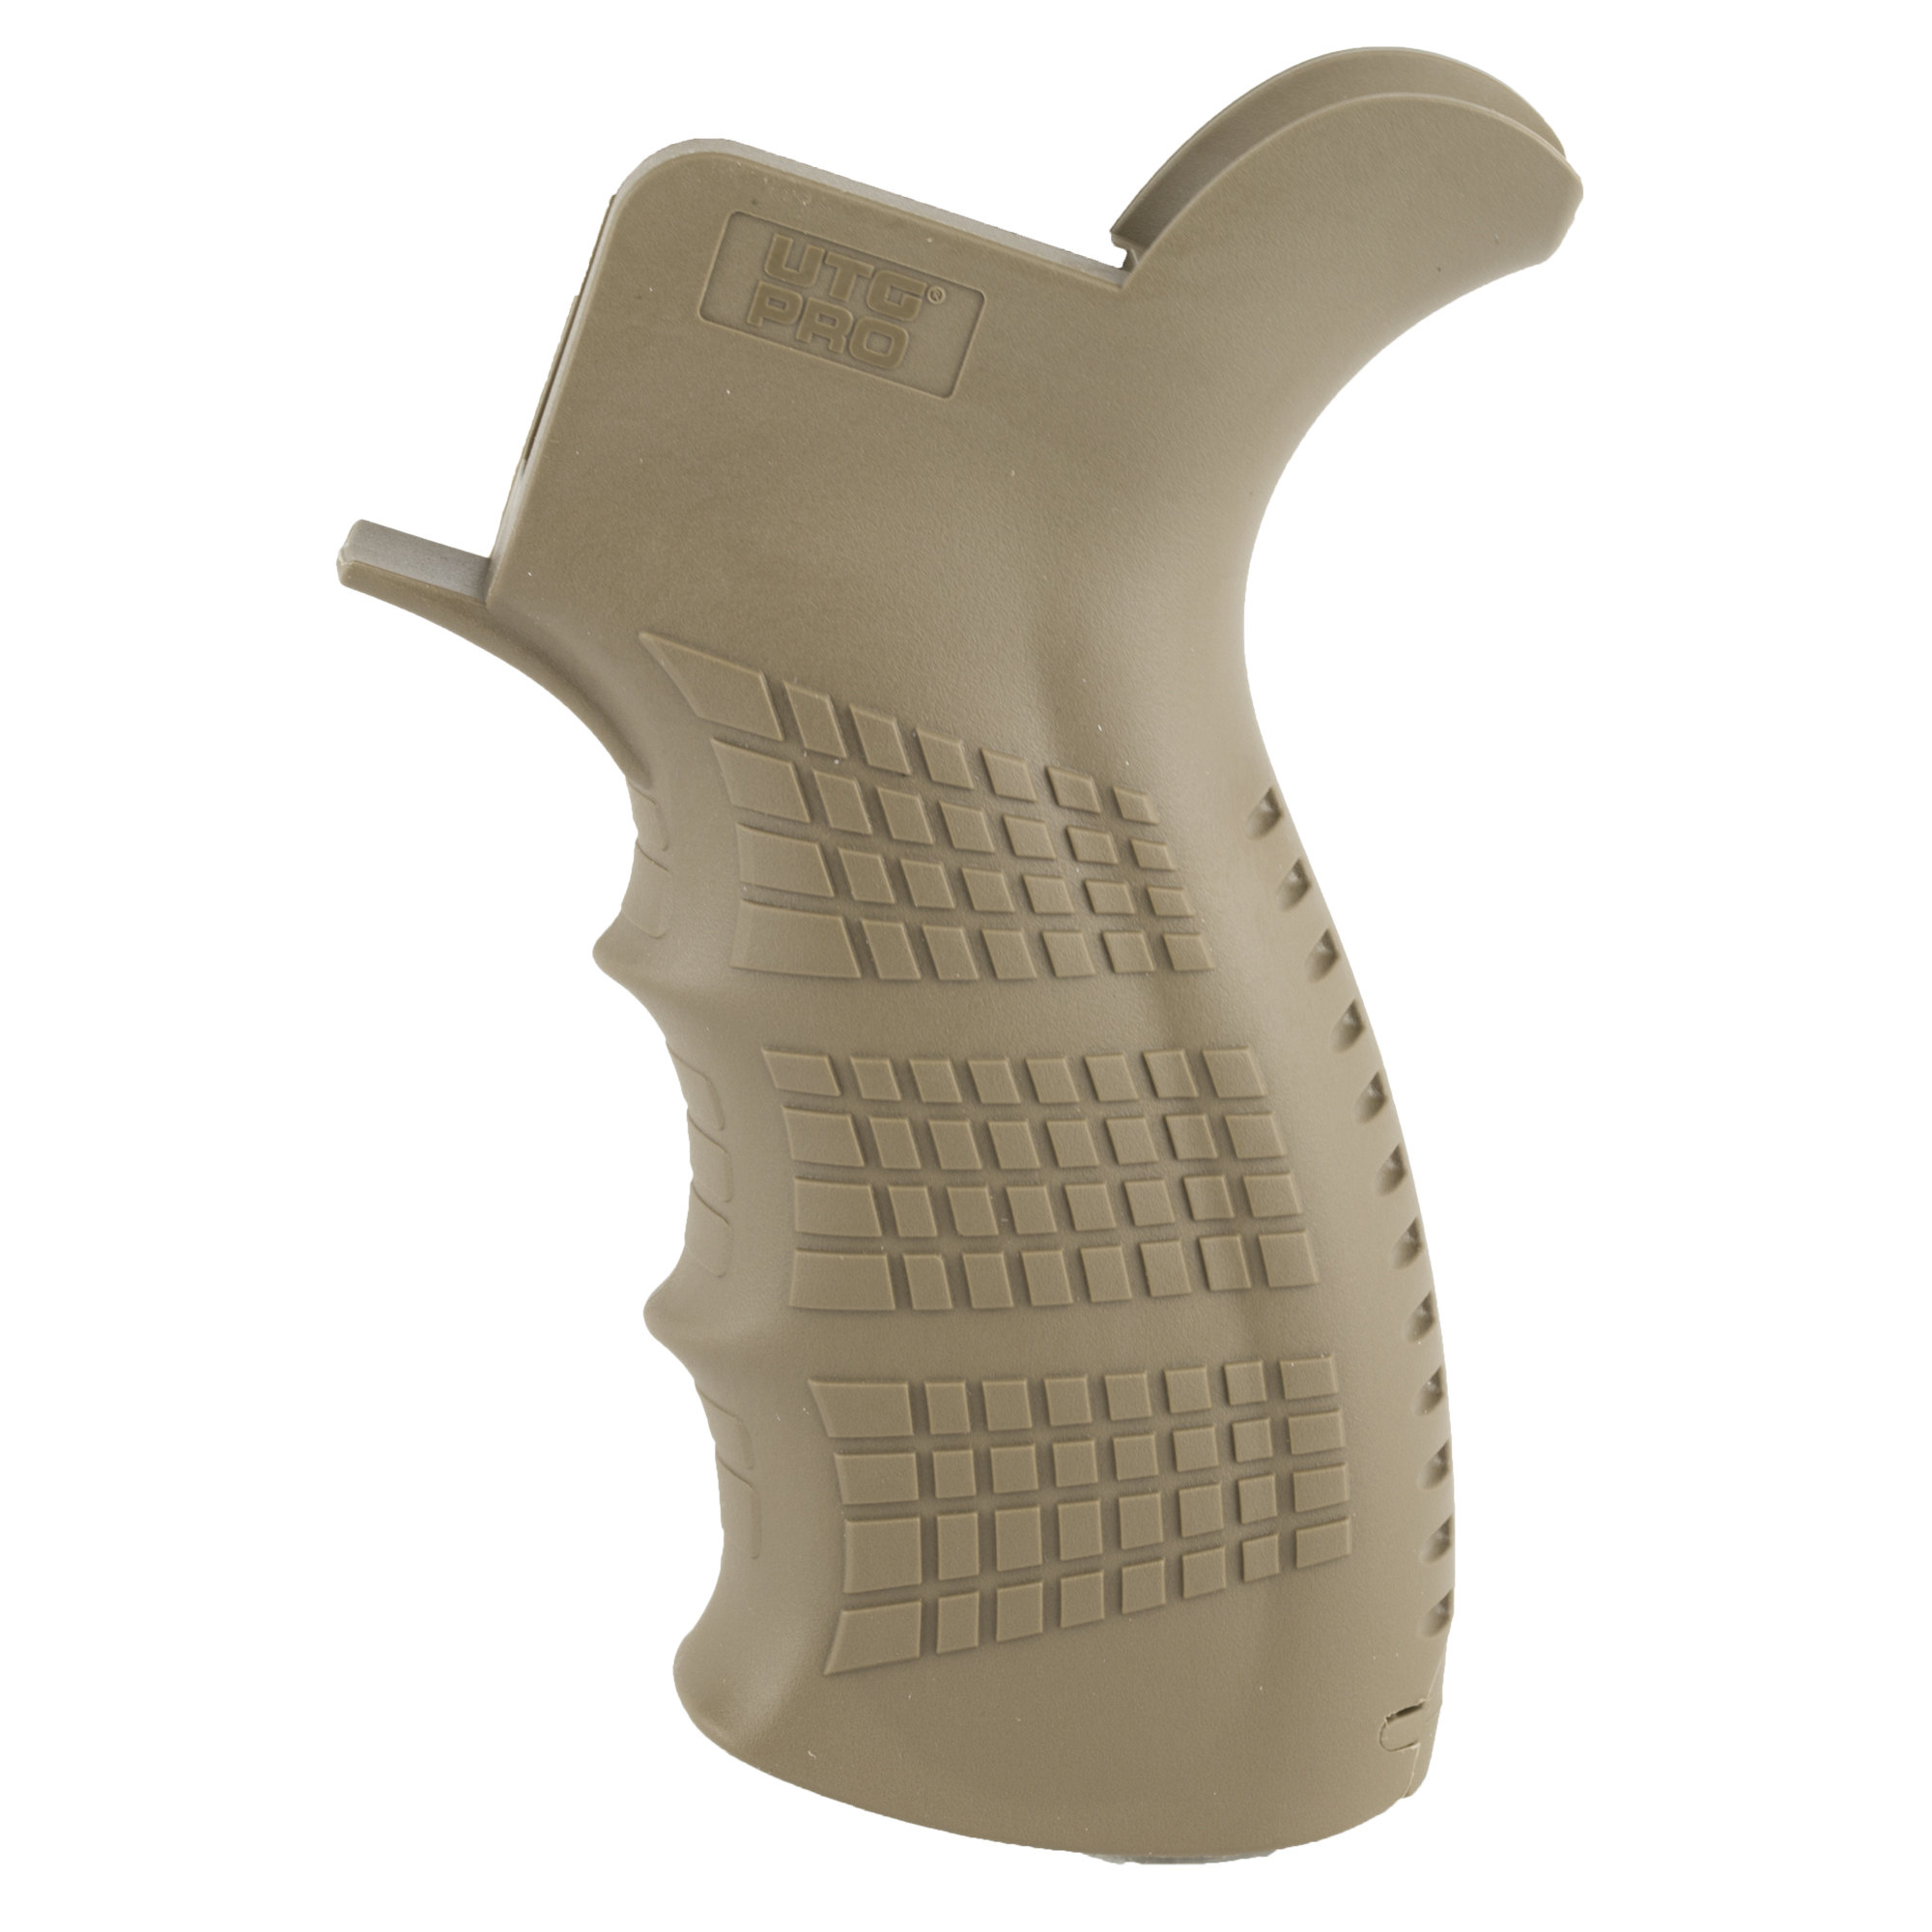 """This is the UTG Pro ambidextrous pistol grip for the AR-15. The ergonomic symmetrical palm swells reduce fatigue and improve handling comfort. Its nonslip textured beavertail"""" palm swells and finger grooves provide for a secure and repeatable grip. It features a built in storage compartment with a removable end cap for small parts"""" batteries and or other accessories."""